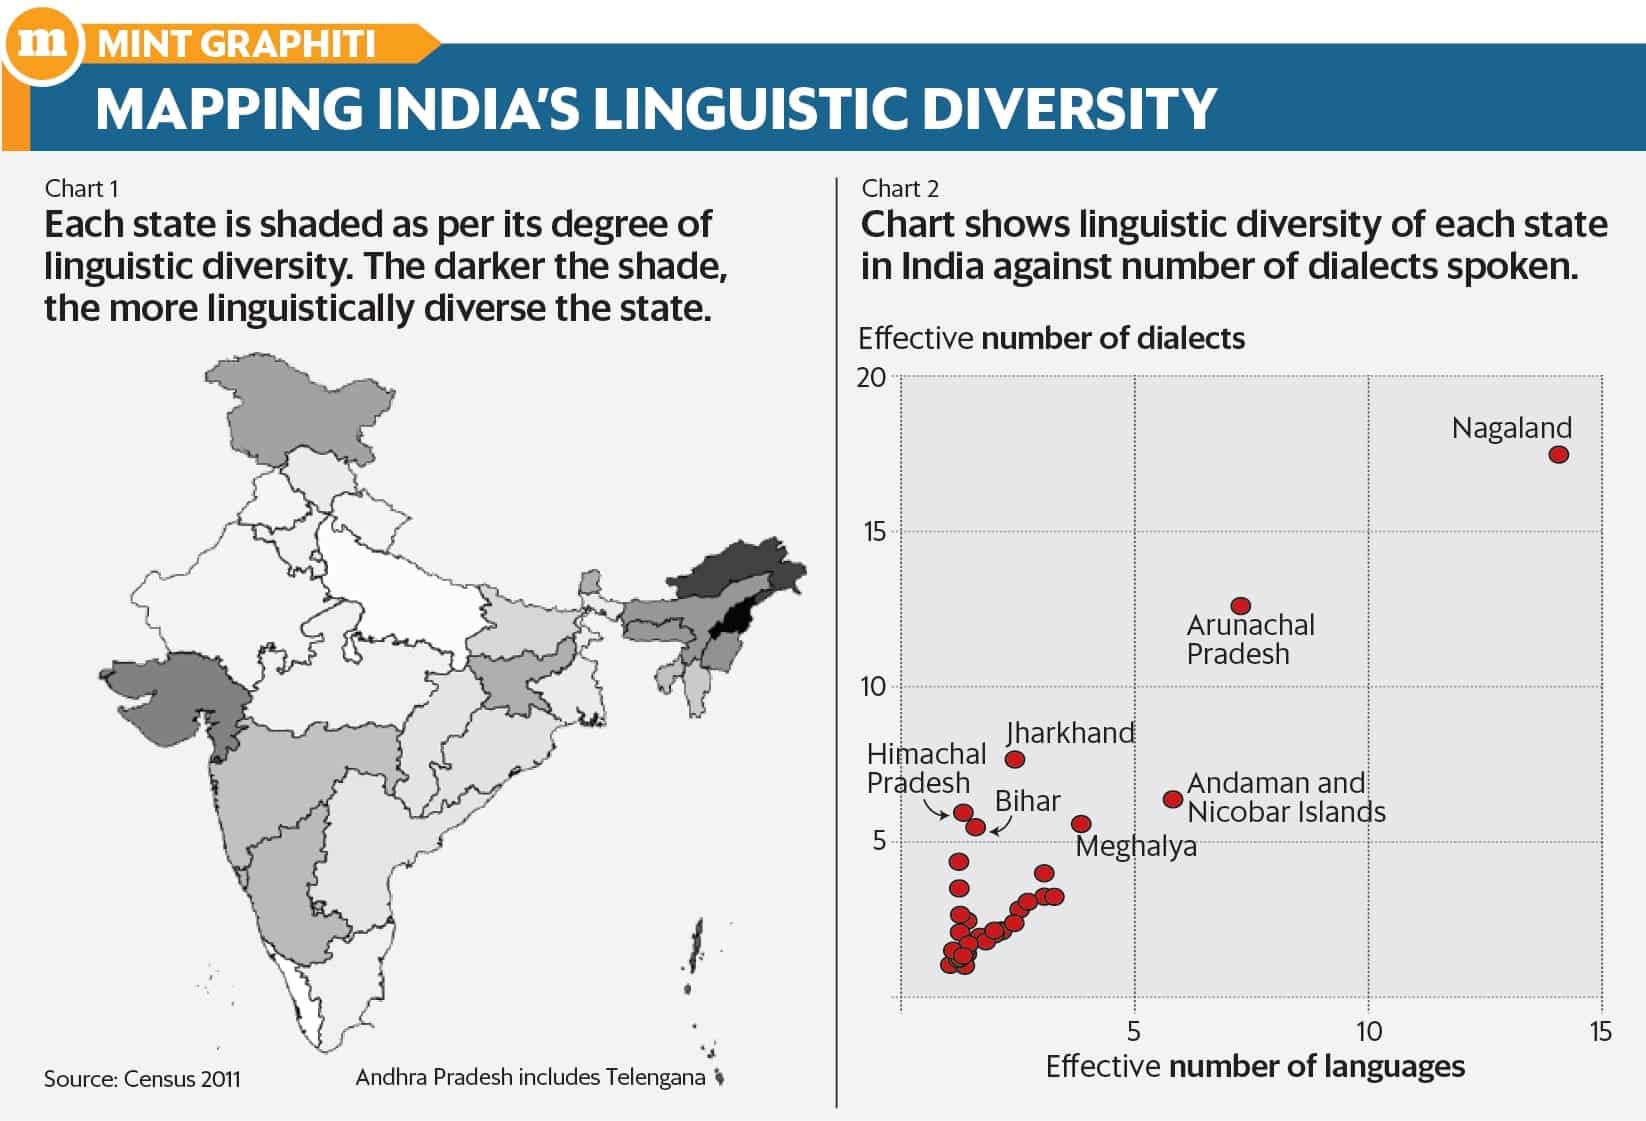 Nagaland is the most diverse state in India, language-wise